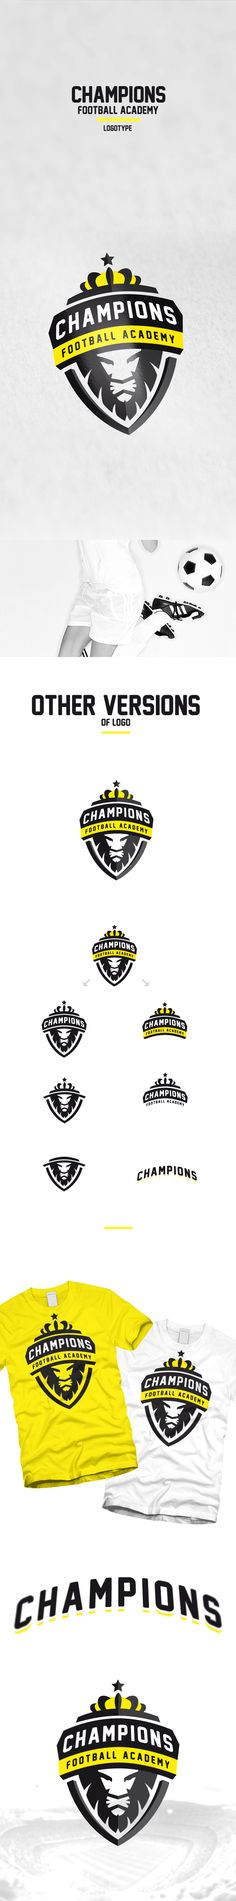 https://www.behance.net/gallery/25357427/Champions-Football-Academy